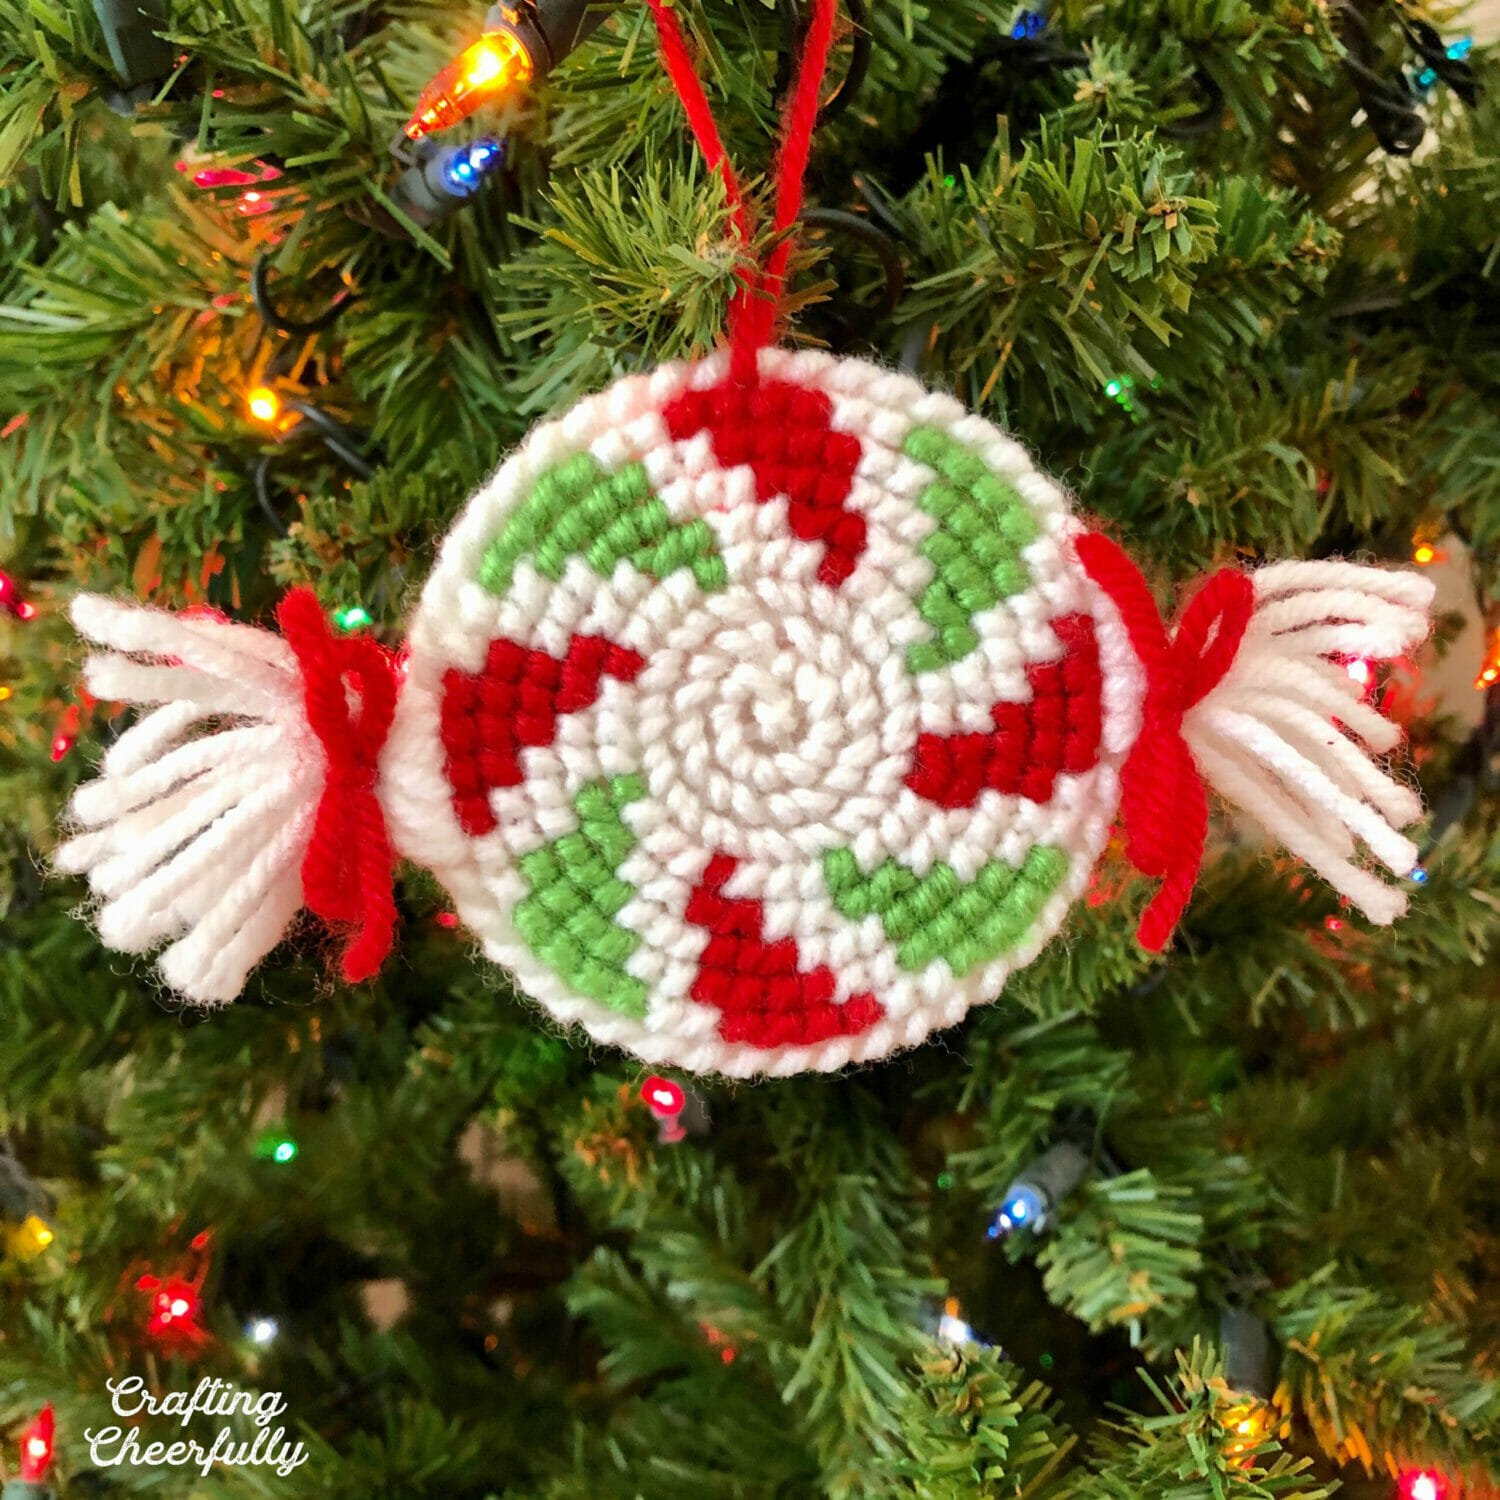 Peppermint ornament hangs on a Christmas tree.